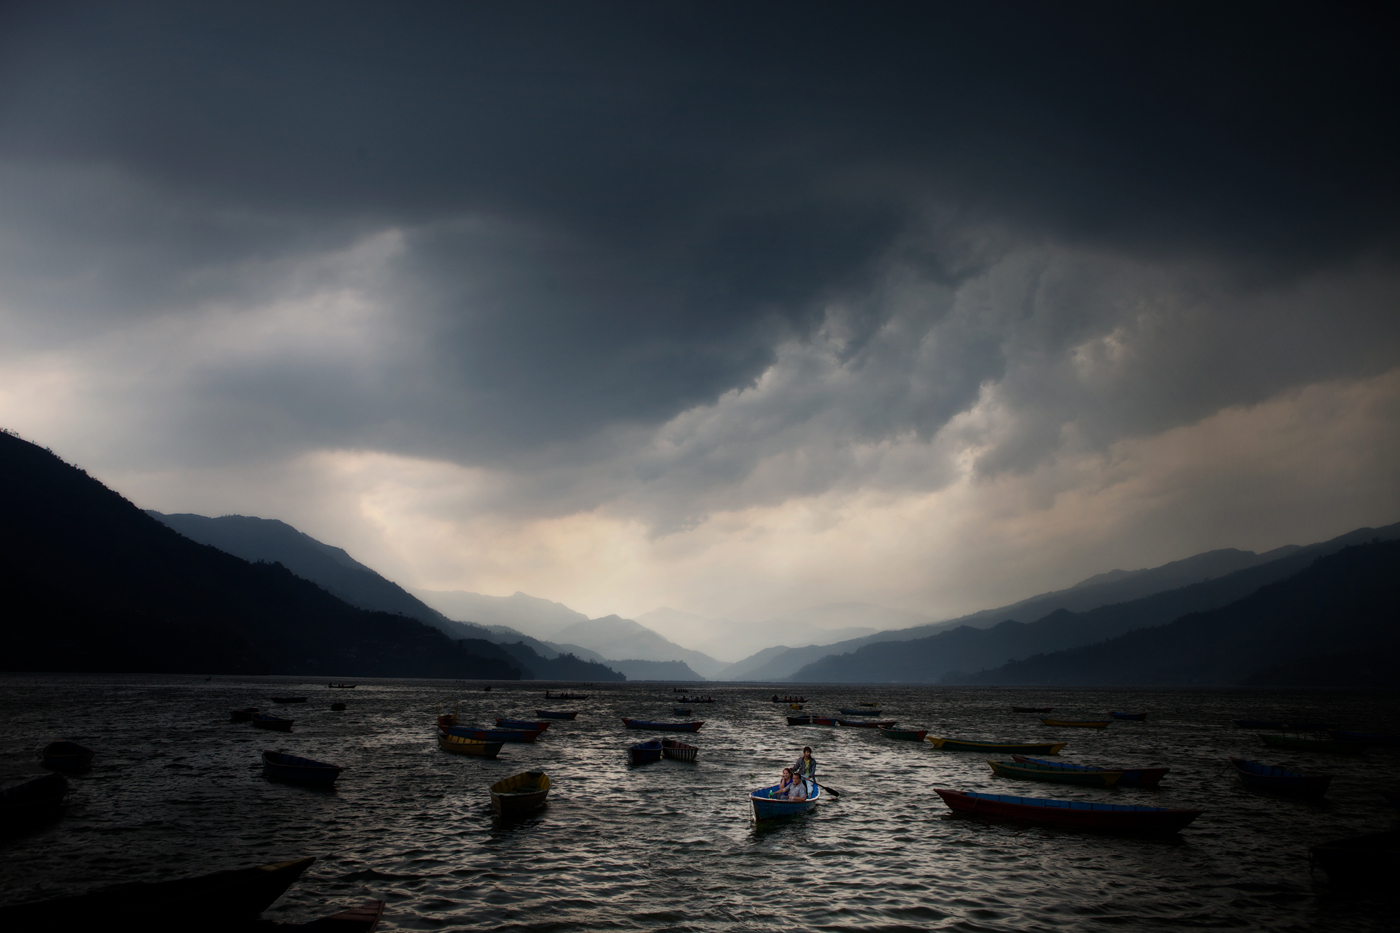 'Nepal Storm Rolling In' by Sarah DiCicco